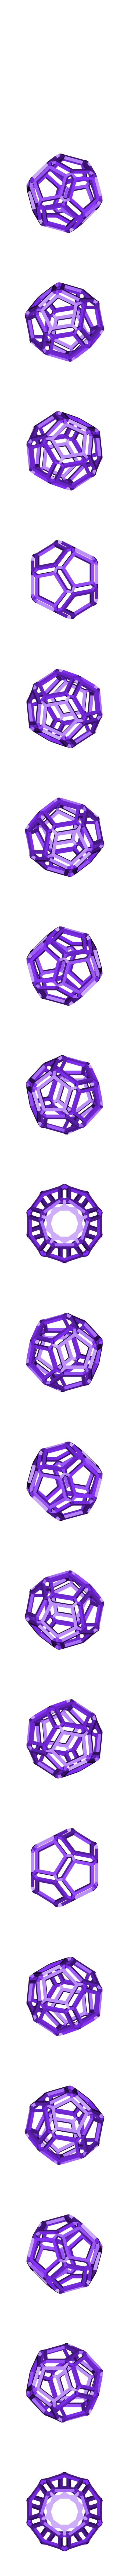 dodecahedron.stl Download free STL file 3D object 5 • 3D printing design, Wailroth3D